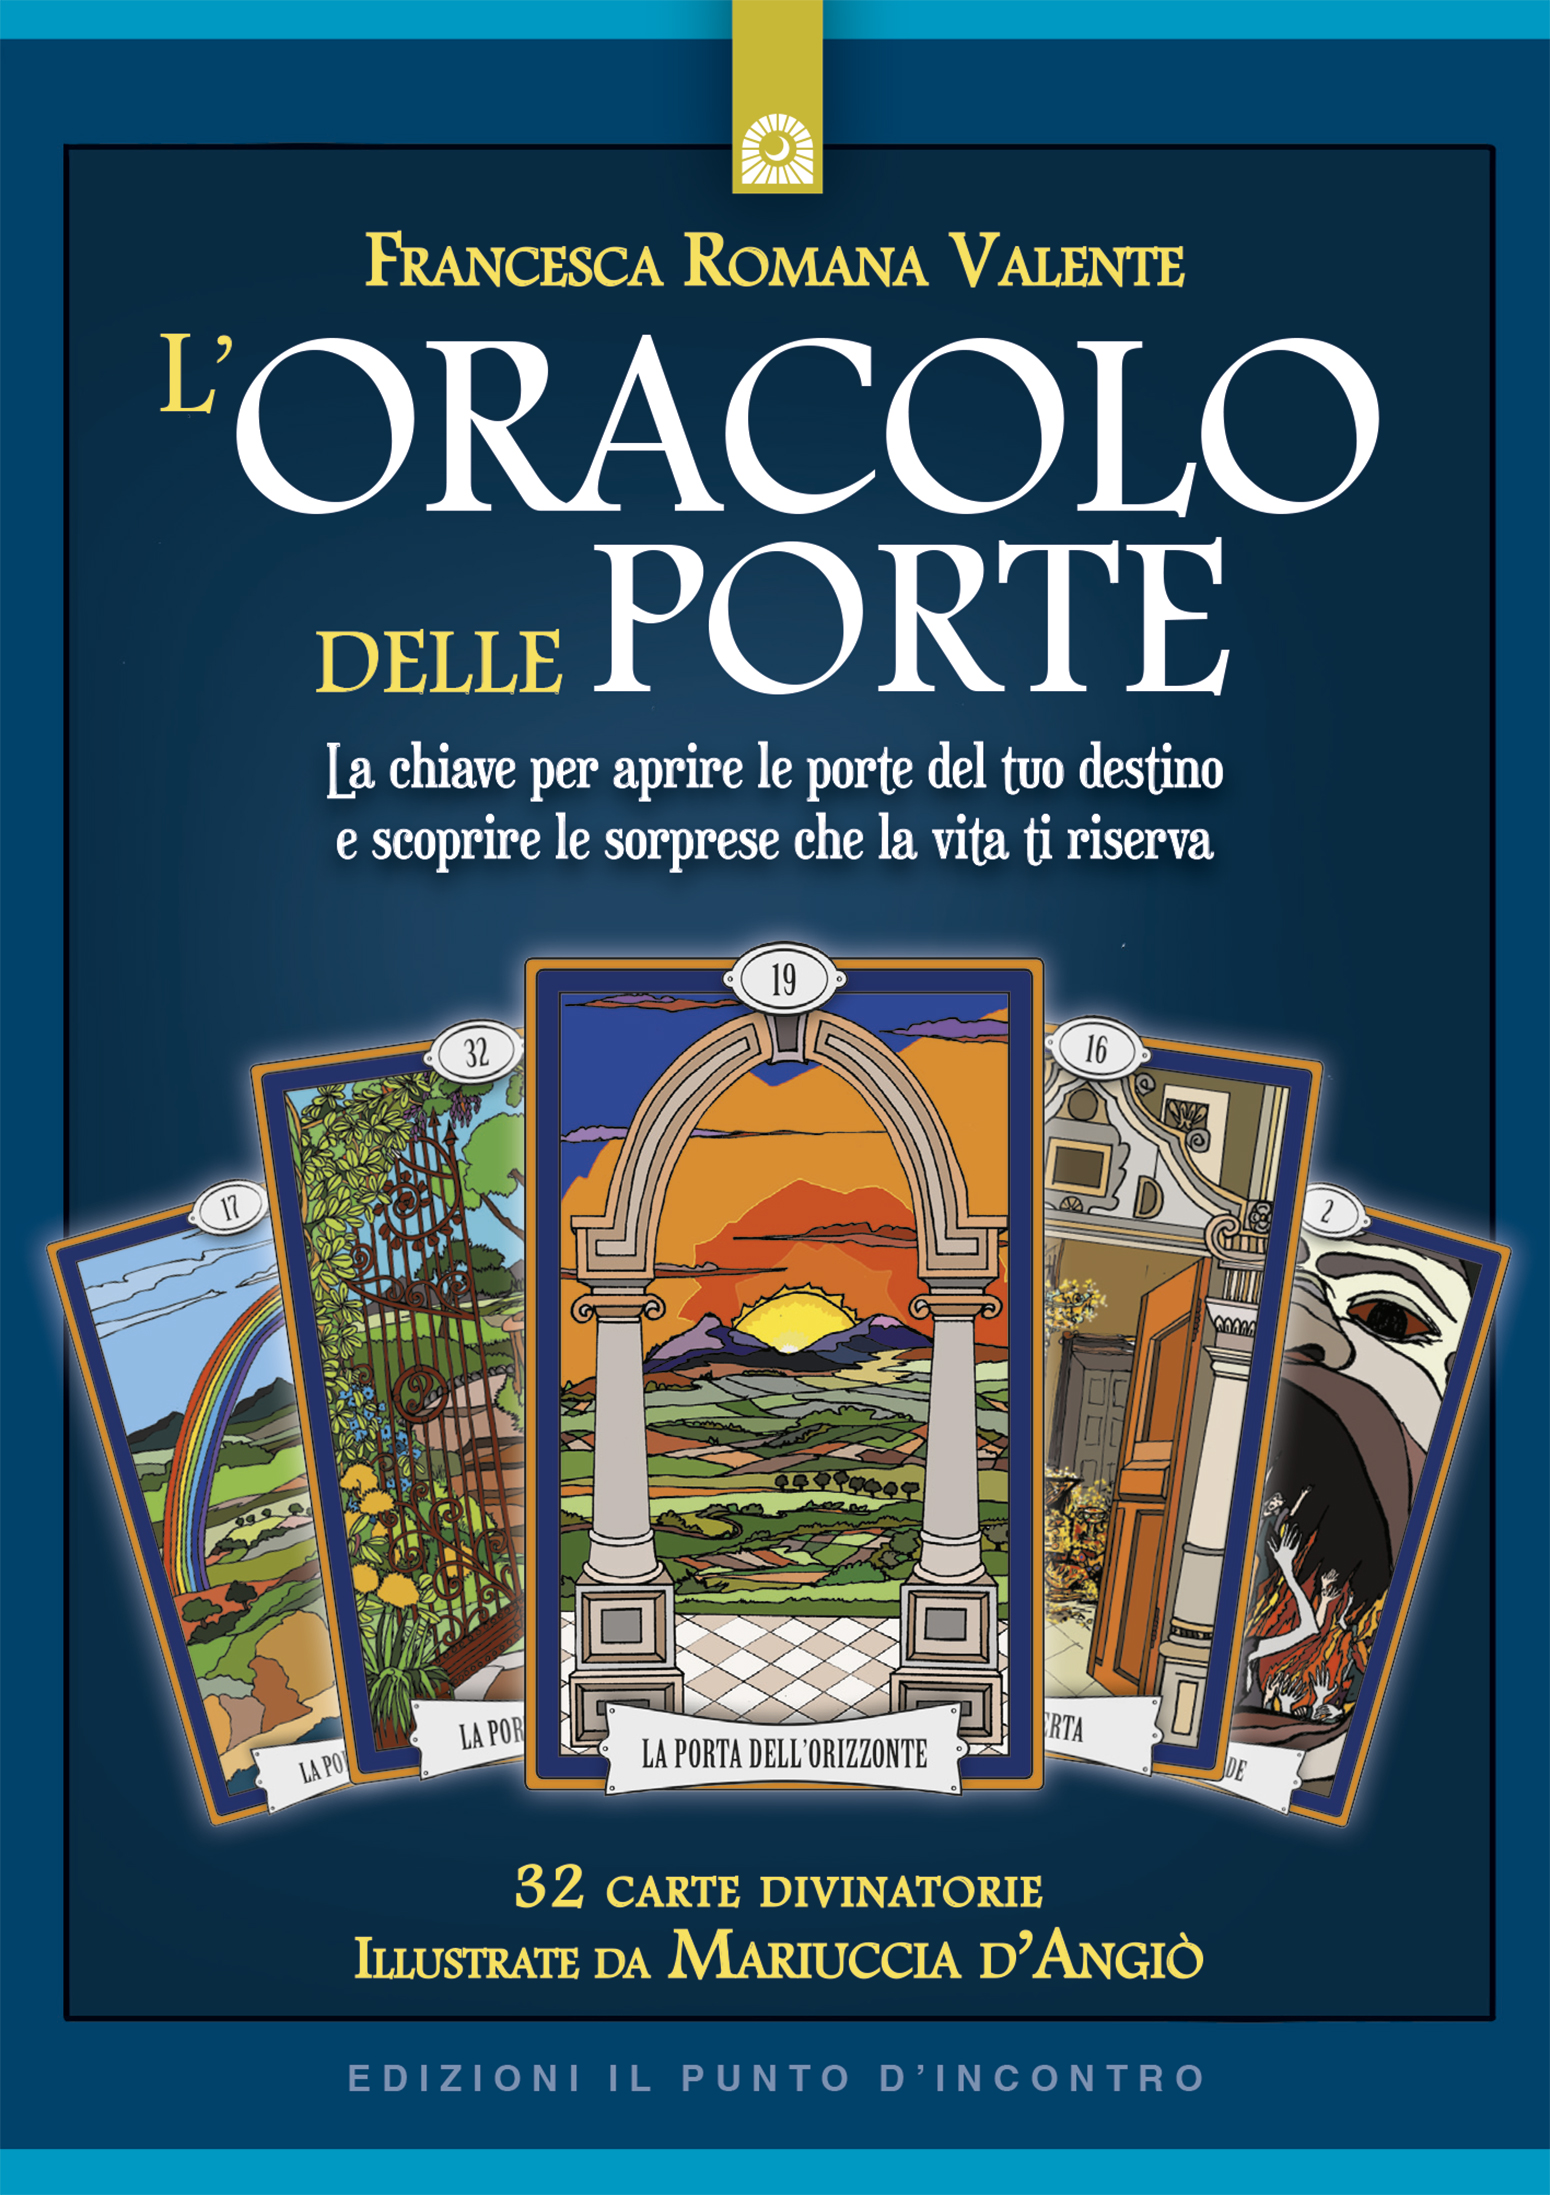 L'oracolo delle porte ( The oracle of the doors)